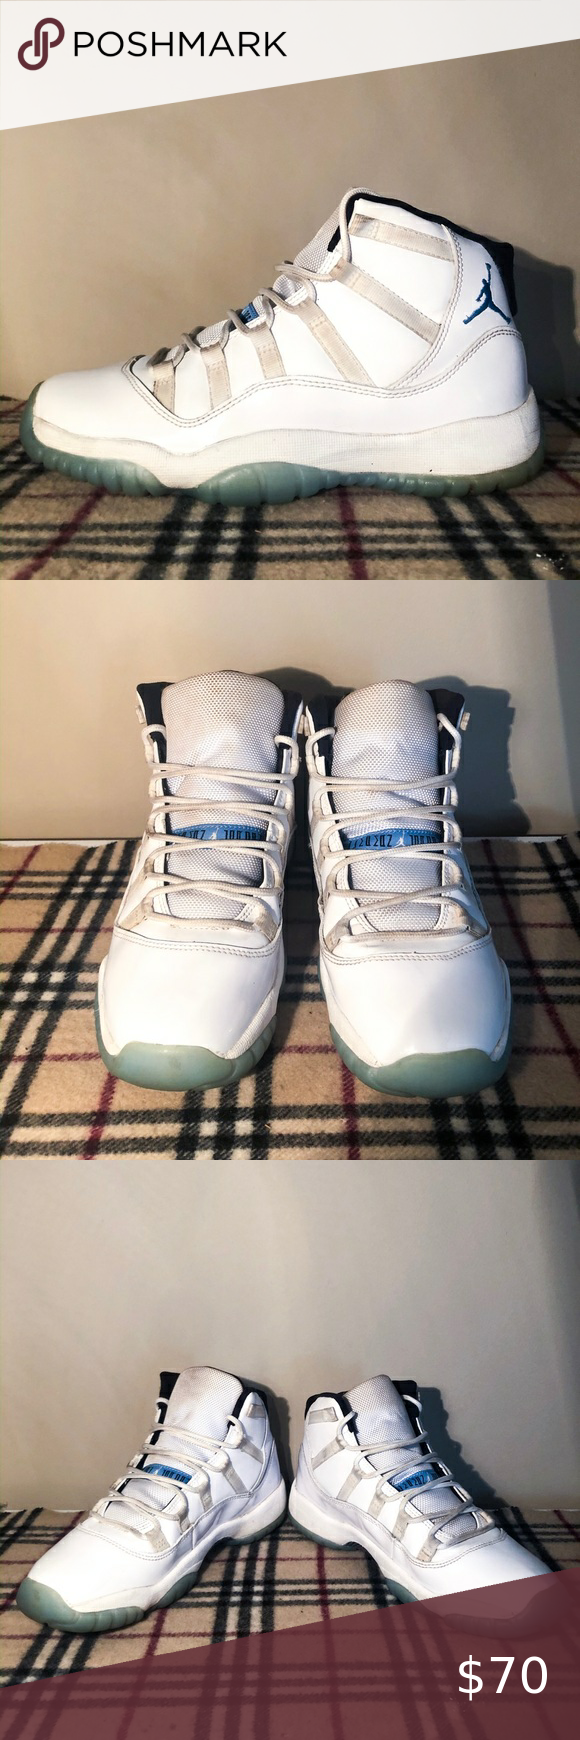 "Air Jordan 11 ""Legend Blue"" Size 7 women's in 2020"